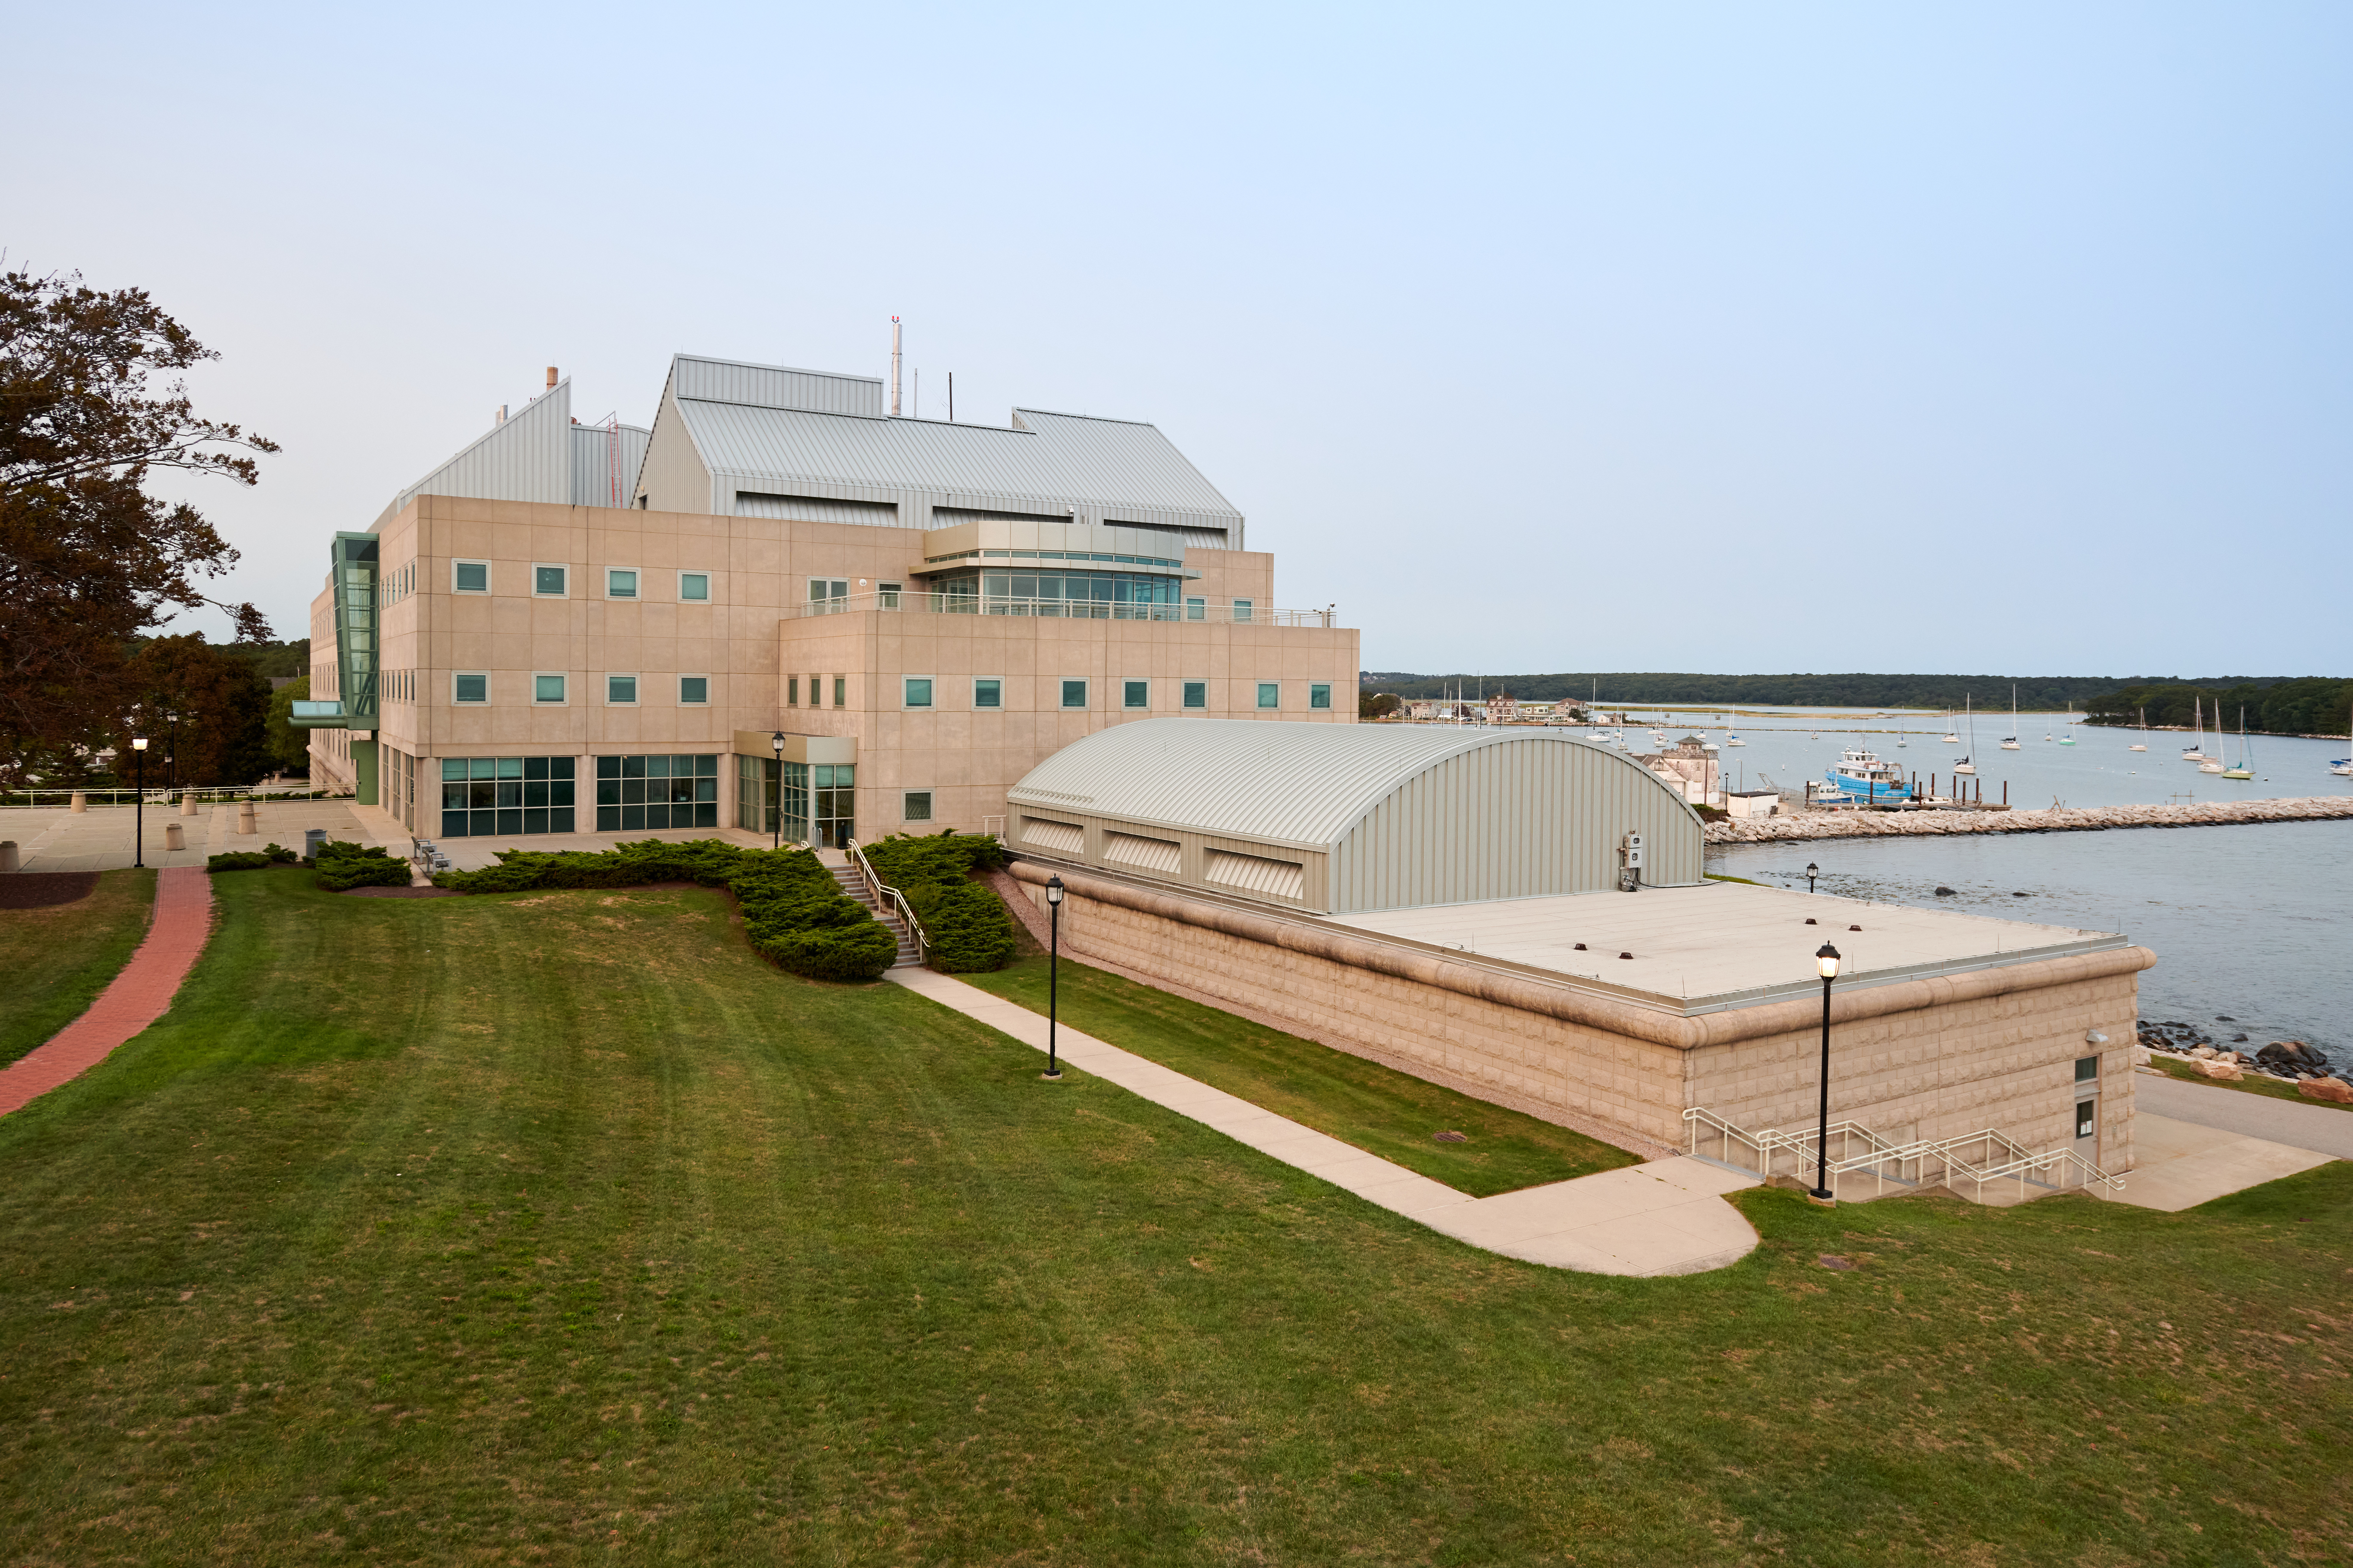 A view of the Marine Sciences Building at the Avery Point campus